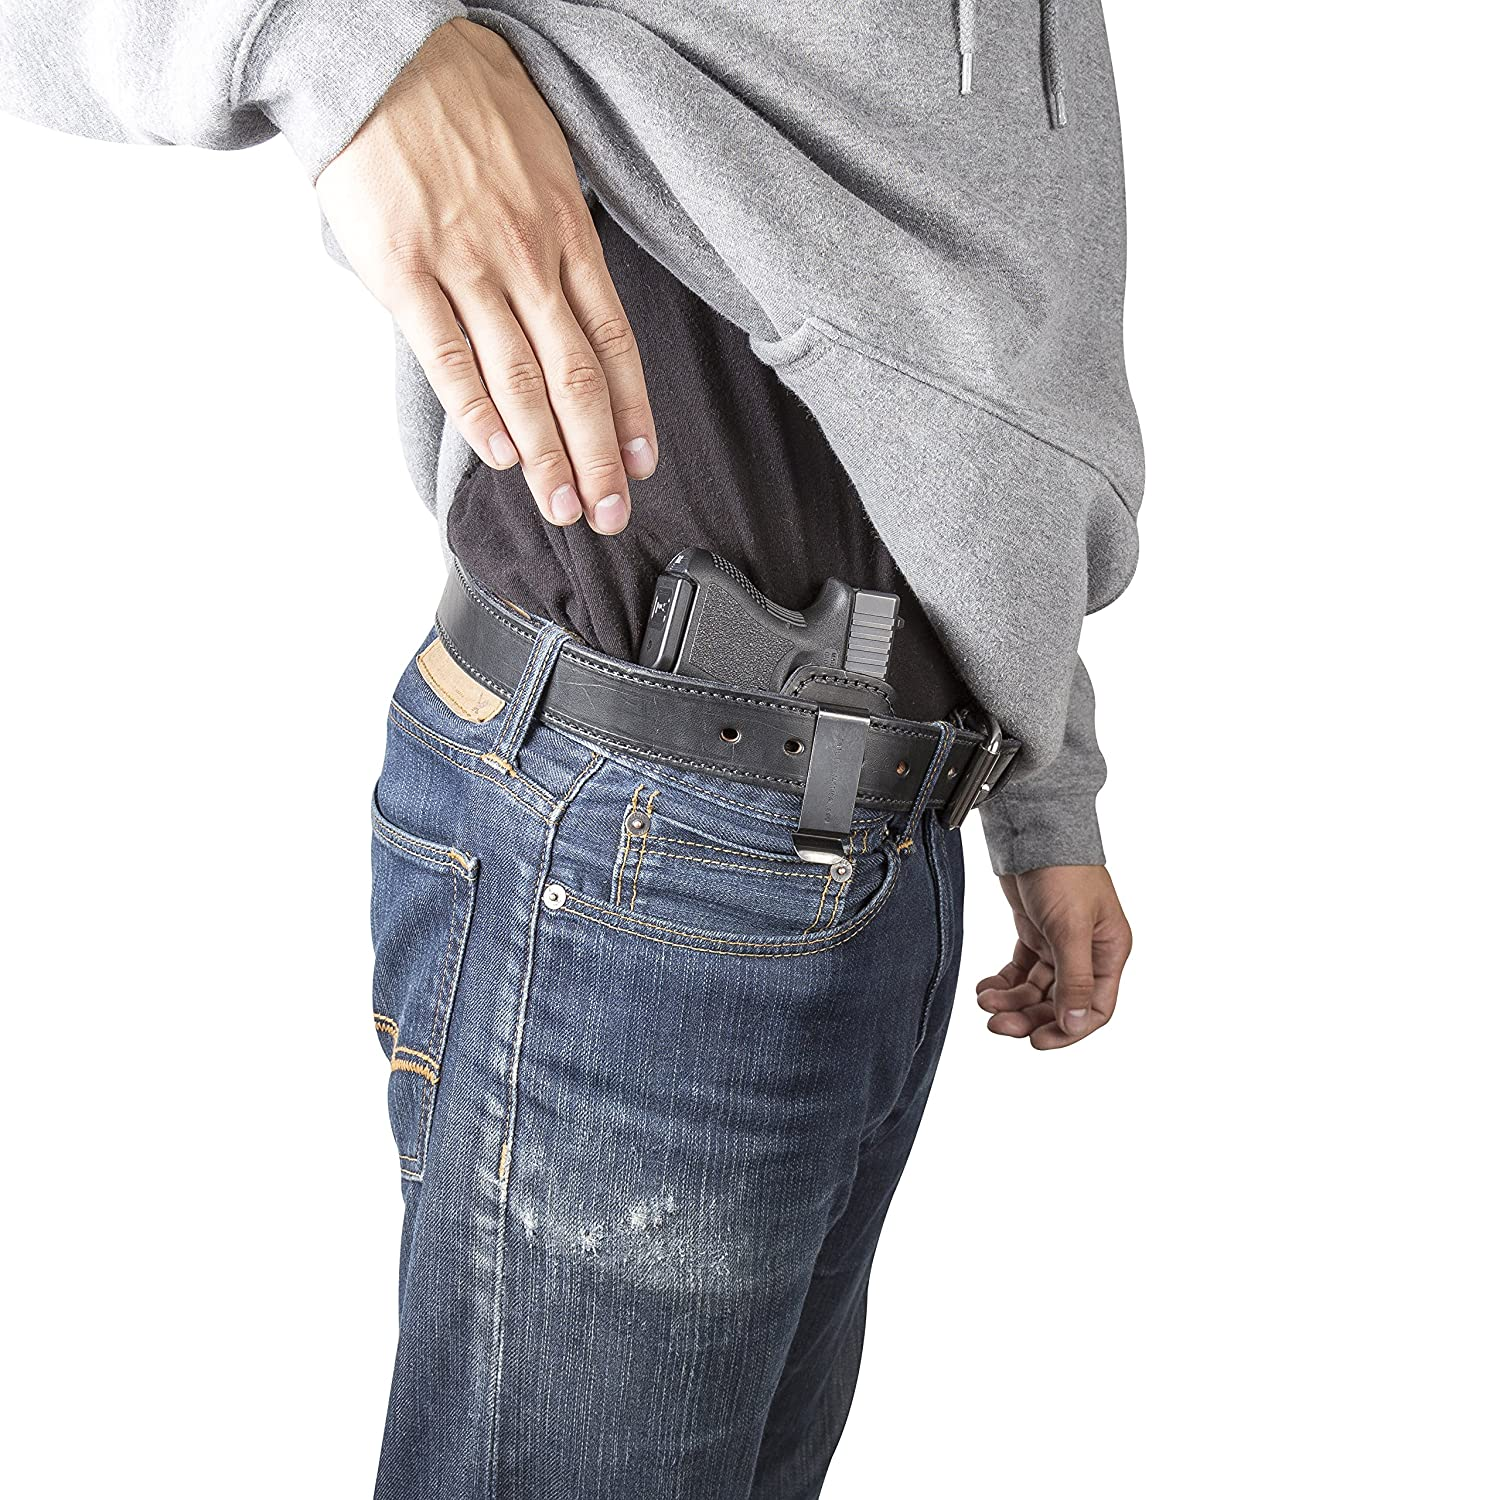 Best IWB Holster For Shield – 2019 Reviews And Top Picks